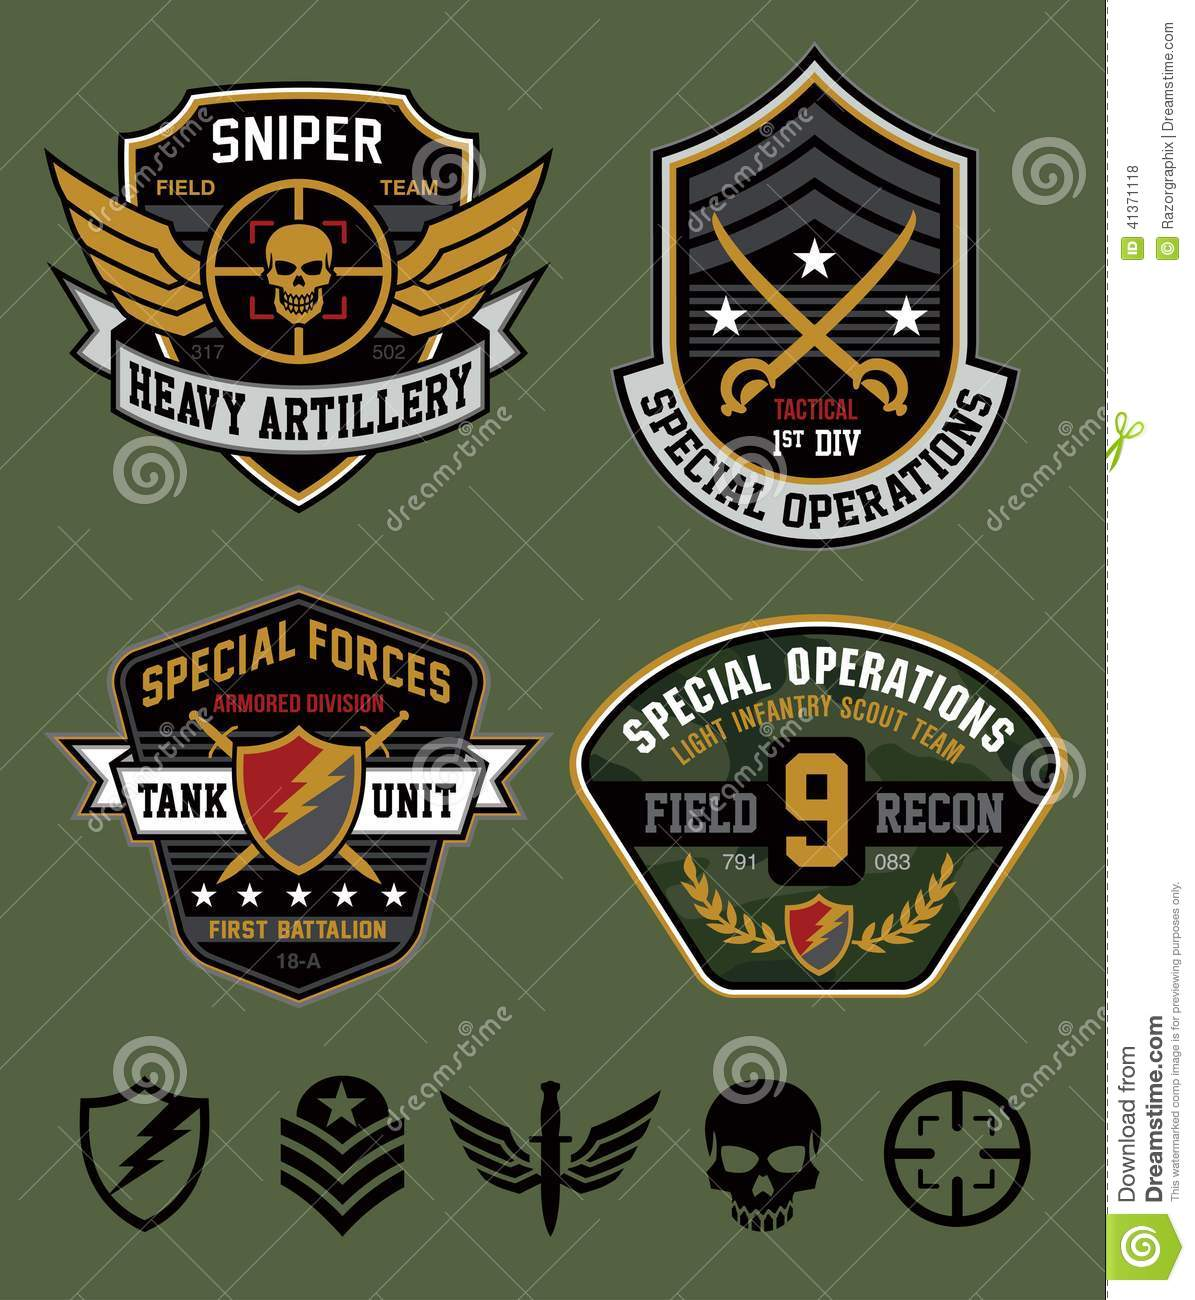 military patch template - patch cartoons illustrations vector stock images